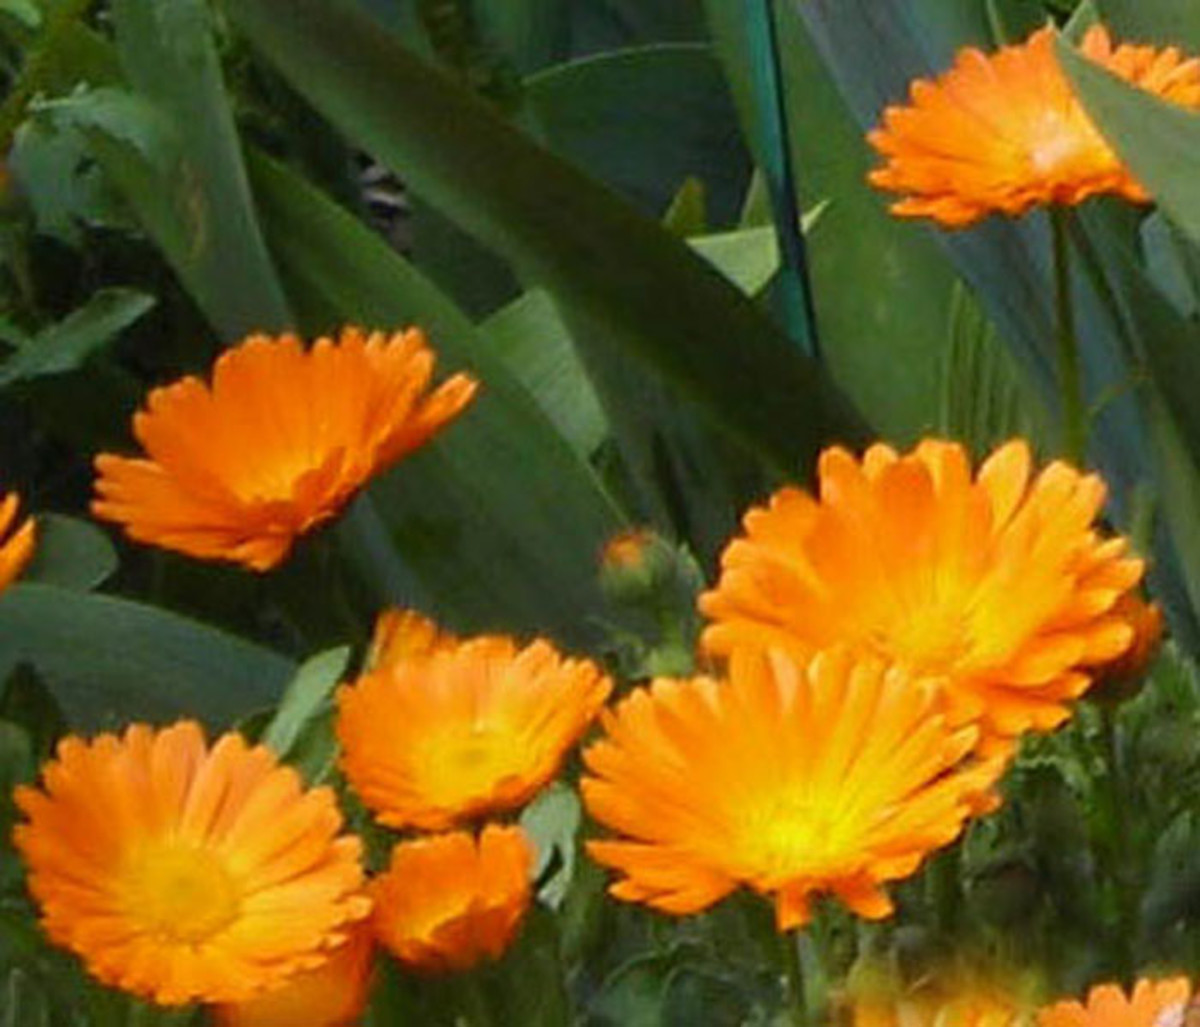 Marigolds (also known as Calendula)